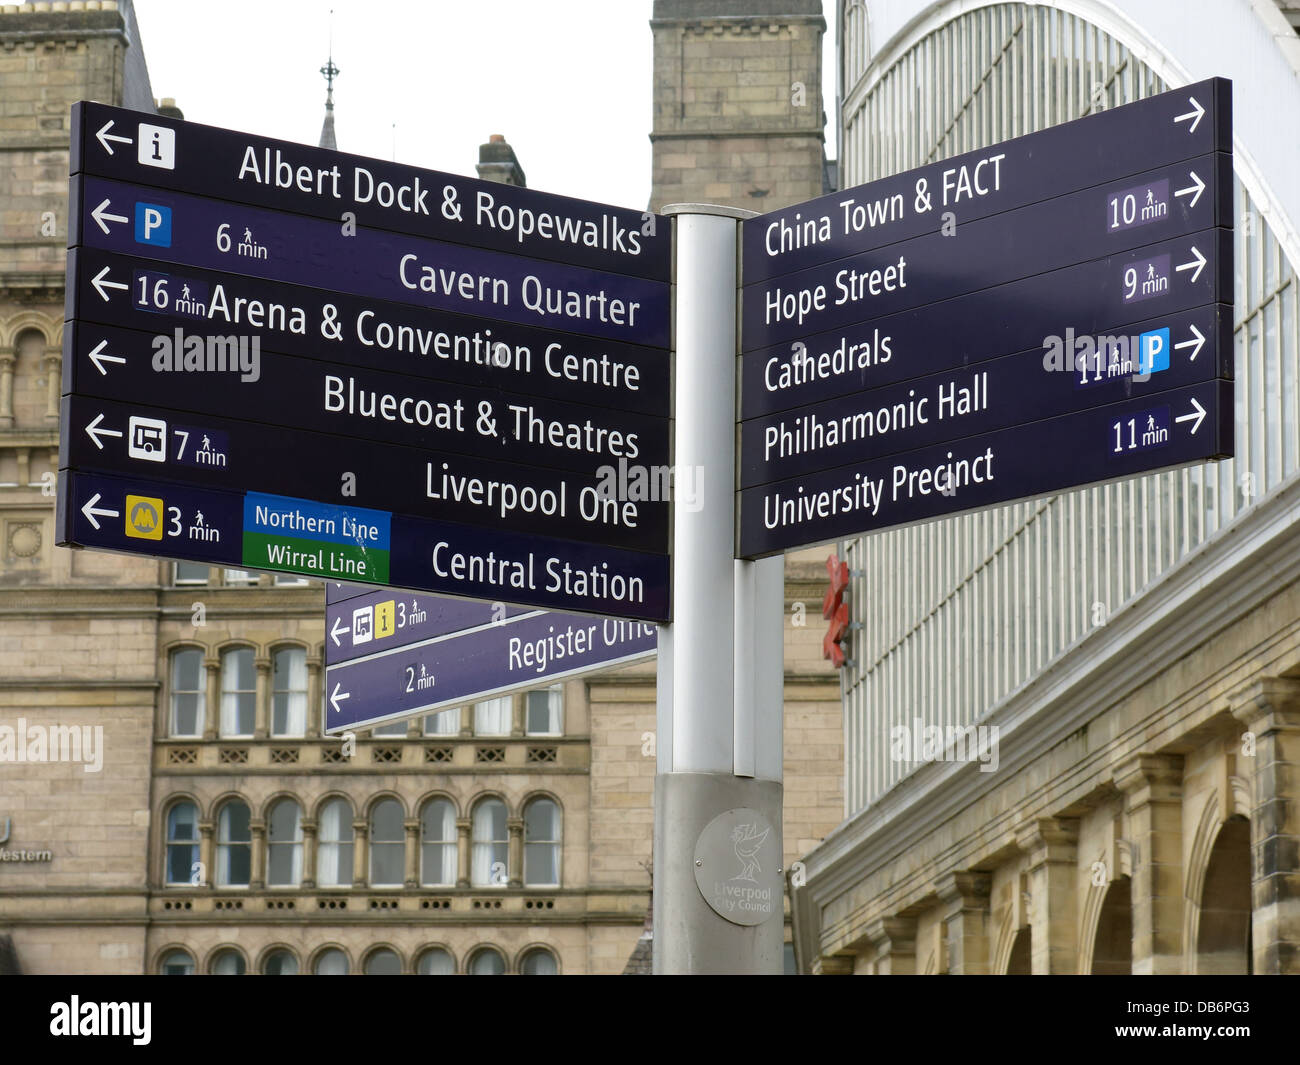 Sign showing Liverpool city centre tourist attractions, Merseyside, North West England, UK, L1 1JD - Stock Image